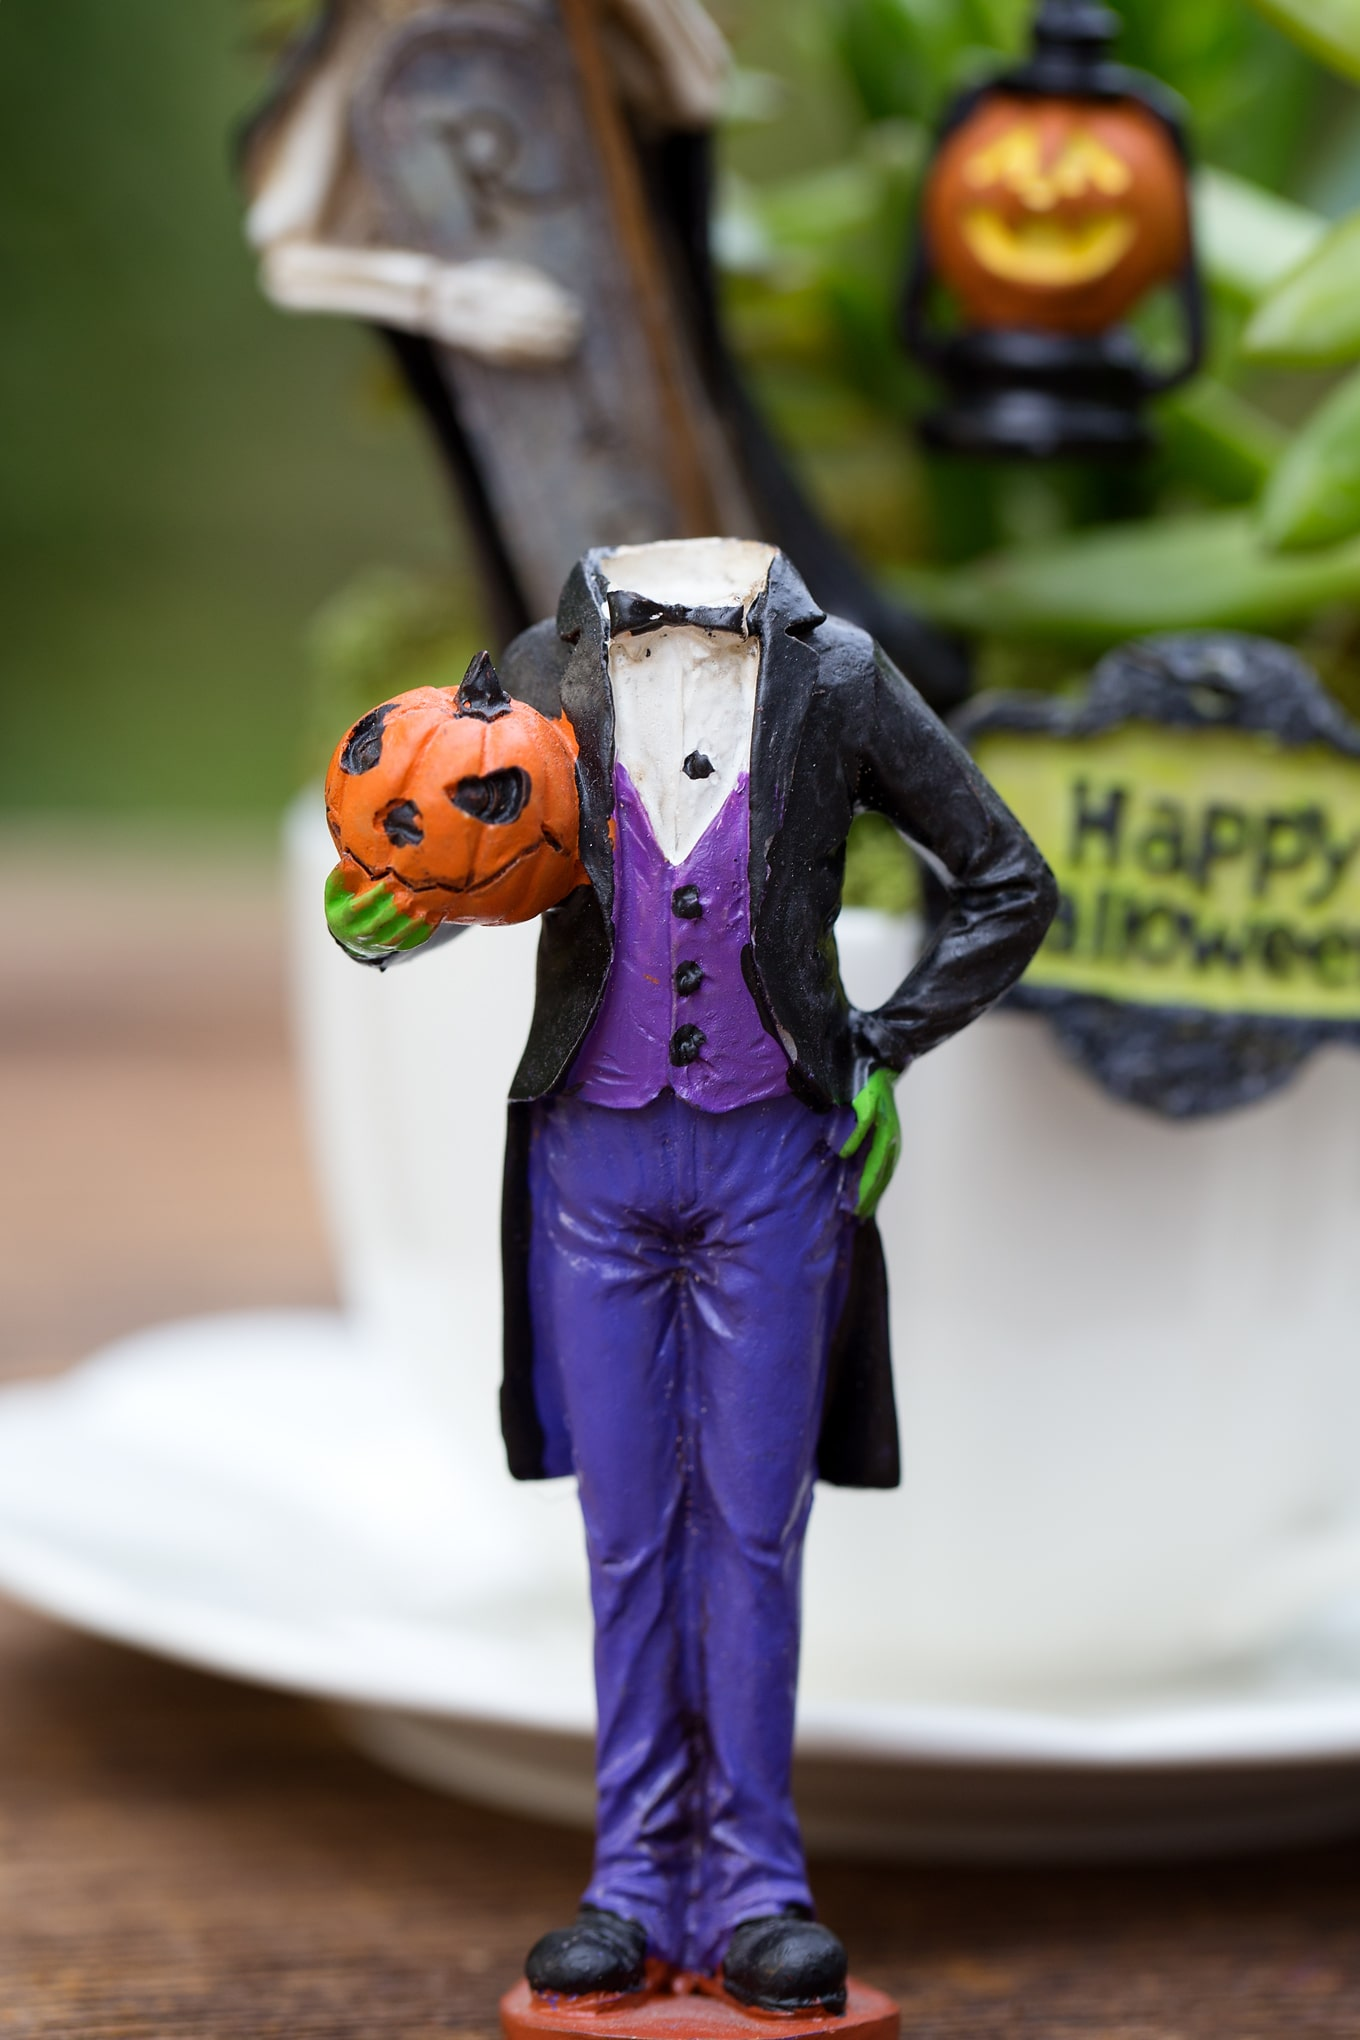 Halloween Teacup Garden Headless Pumpkin Man